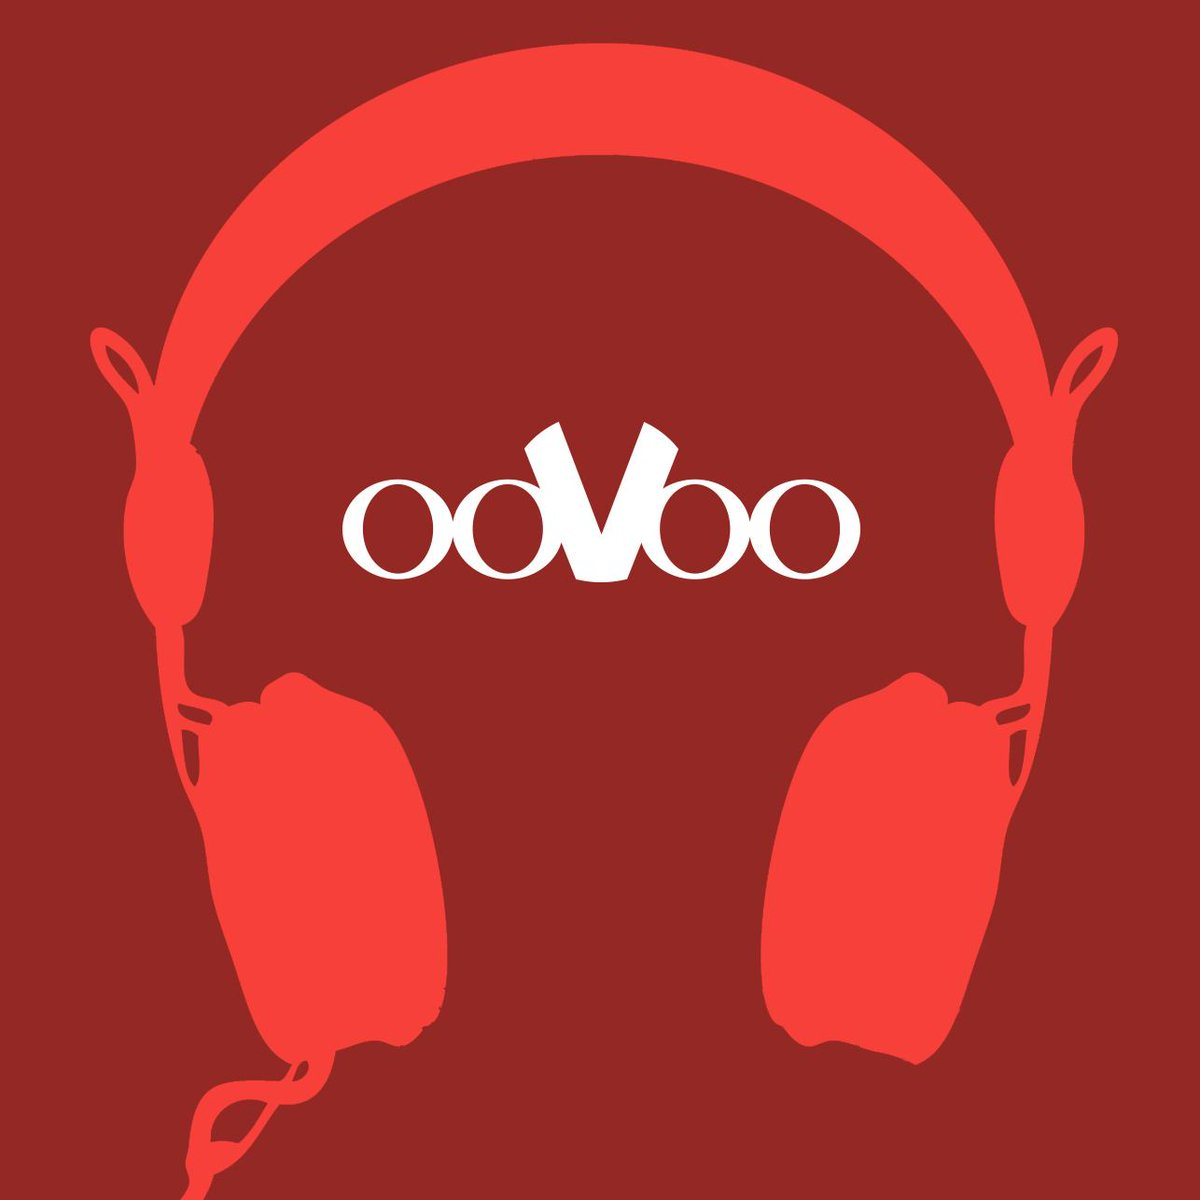 Get @ooVoo now: http://t.co/v9h1k4Kikh & RT to win @beatsbydre! More RTs = more entries. Ends 6/12! http://t.co/cdKaXpNywz